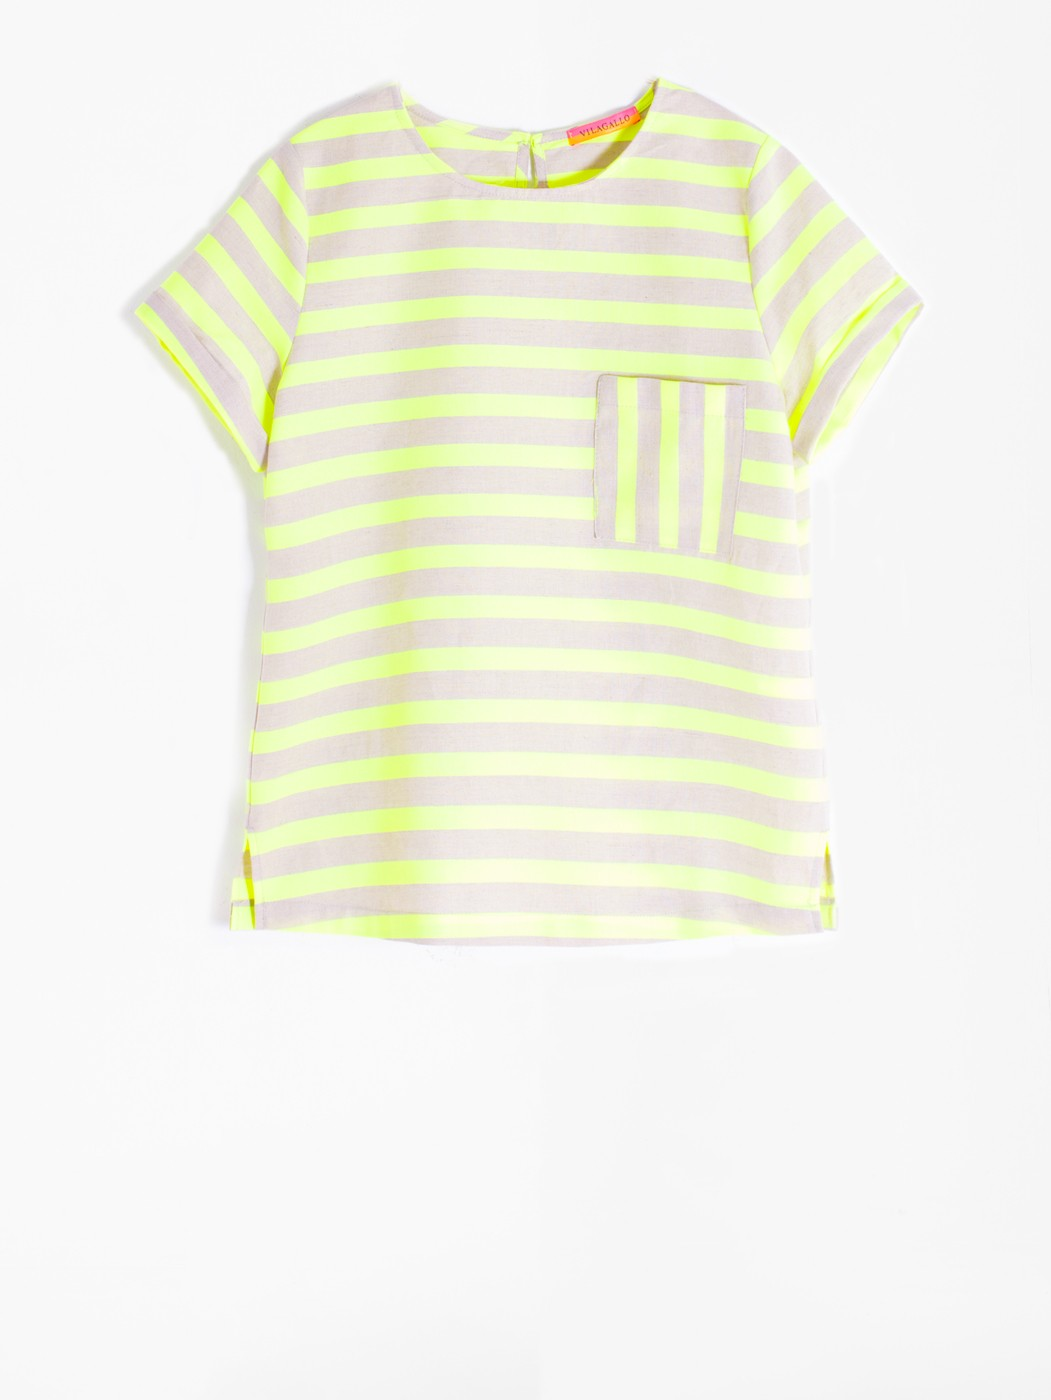 CAMISA CANDY LIME FLUOR STRIPE